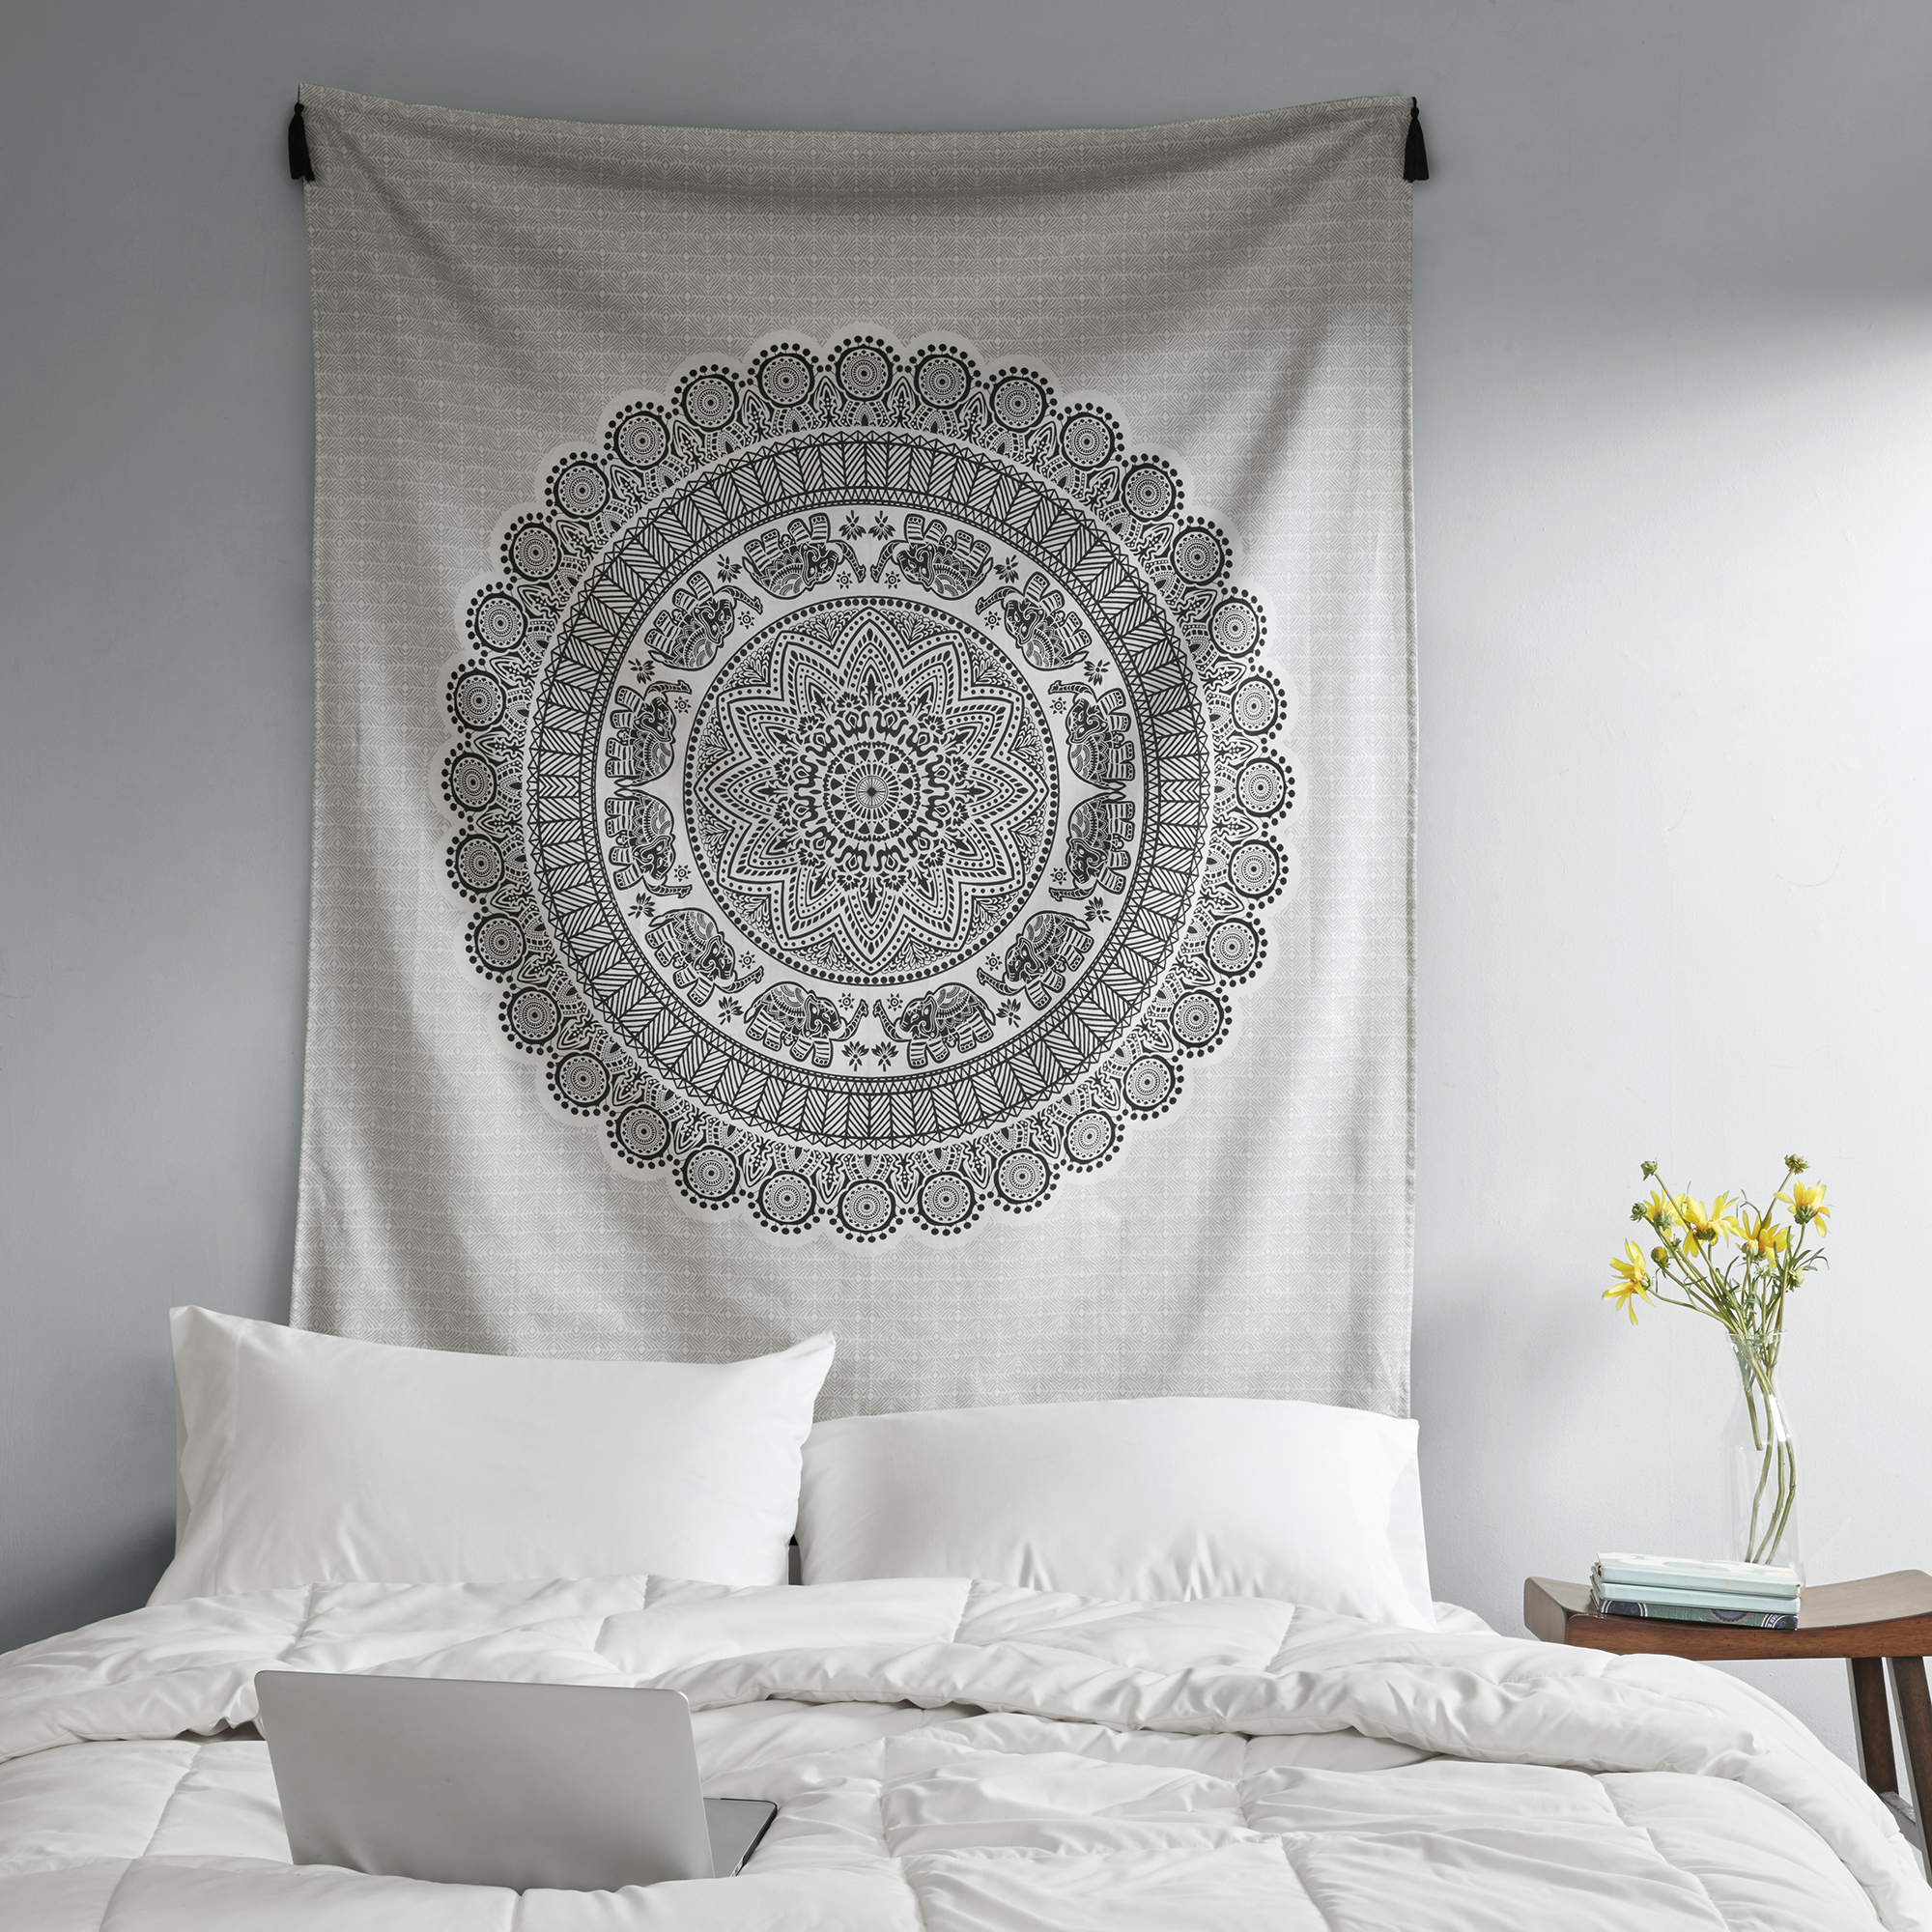 Black and White Medallion Cotton Print Decorative Wall Tapestry by JLA Home